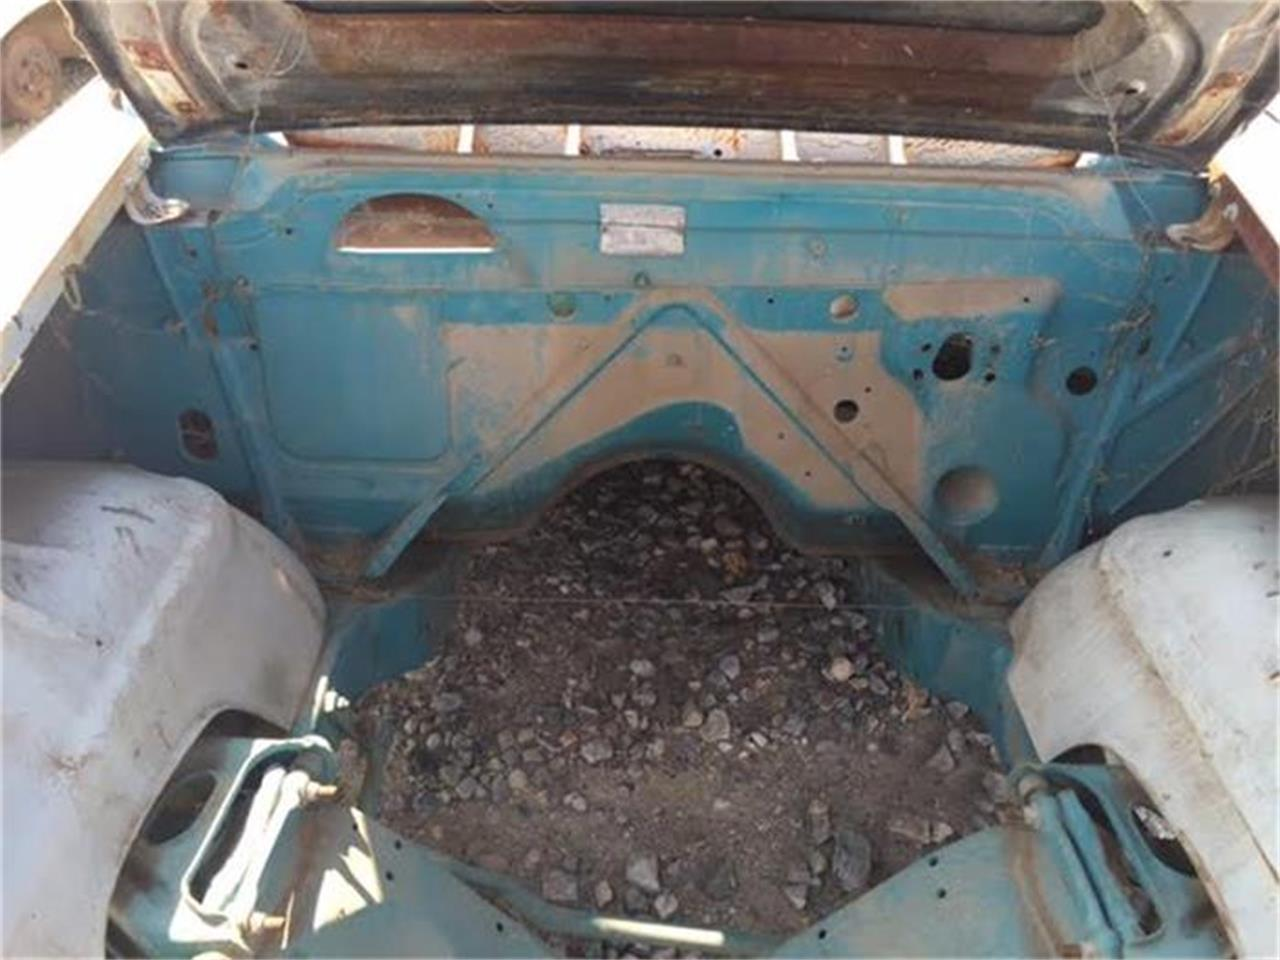 Large Picture of 1958 Chevrolet Station Wagon located in Arizona - $4,500.00 Offered by Desert Valley Auto Parts - FASQ